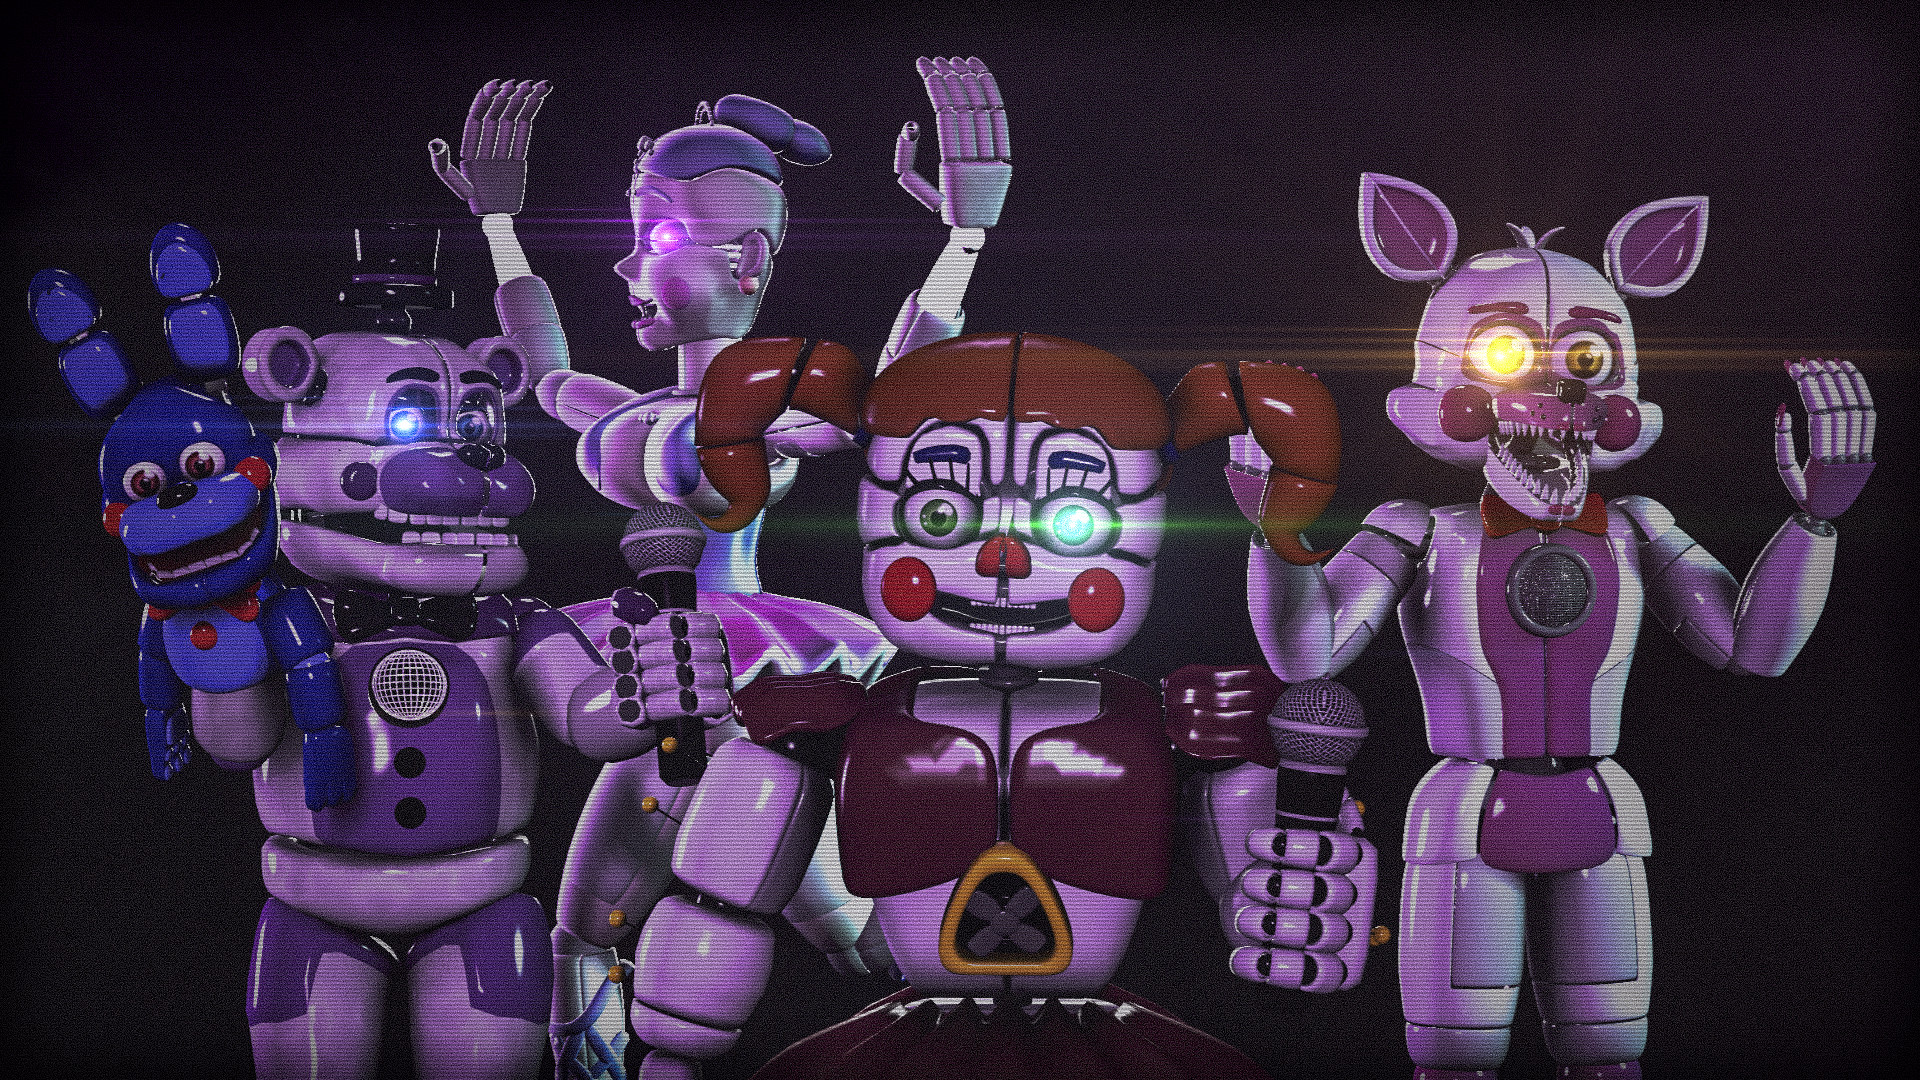 1920x1080 fnaf_sister_location_by_shadow_f1end-dafoxum.png (1920×1080) | FNAF Sister  Location | Pinterest | FNAF, Sister location and Freddy s